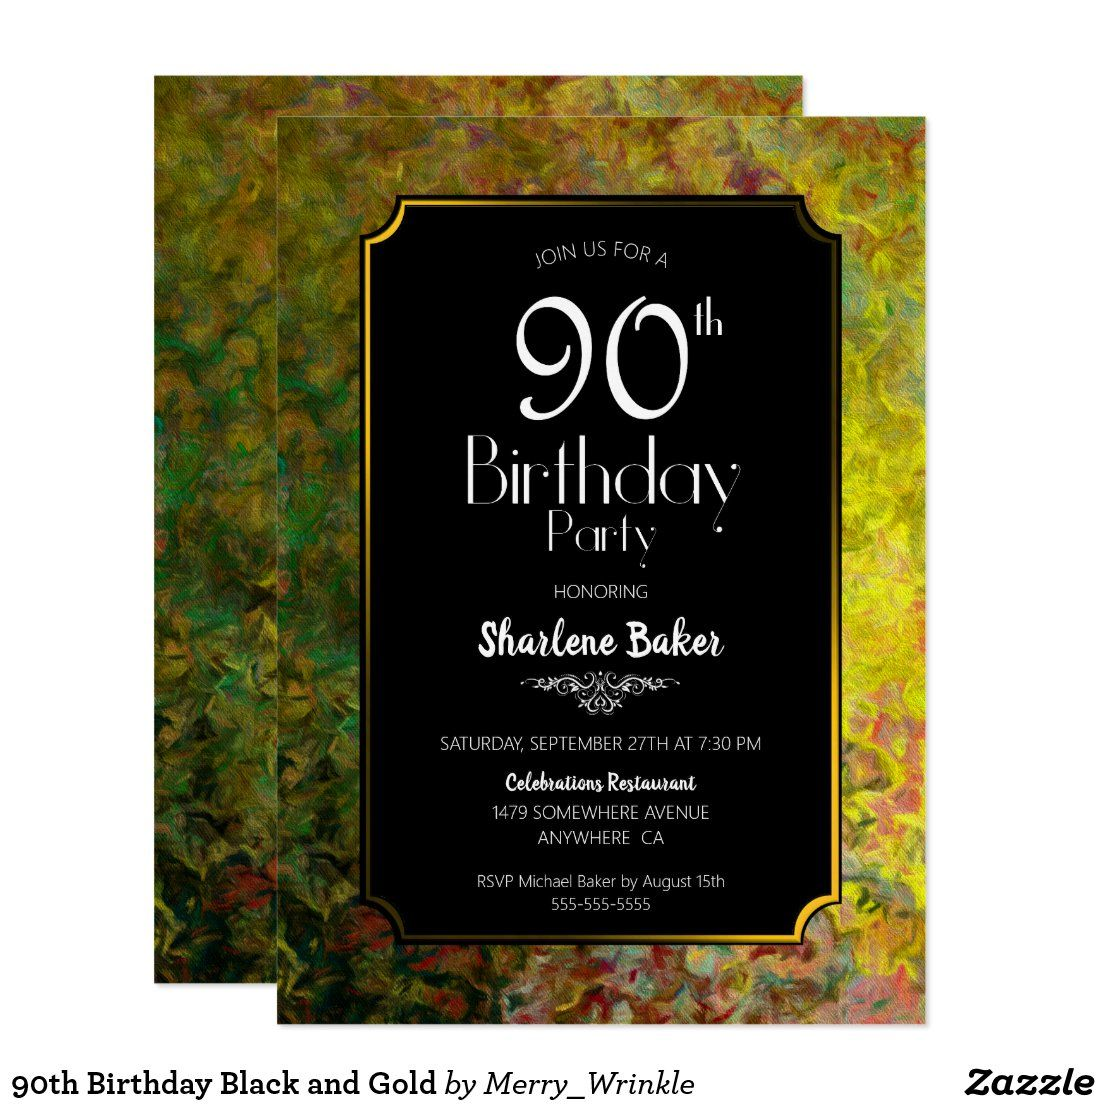 90th Birthday Black and Gold Invitation in